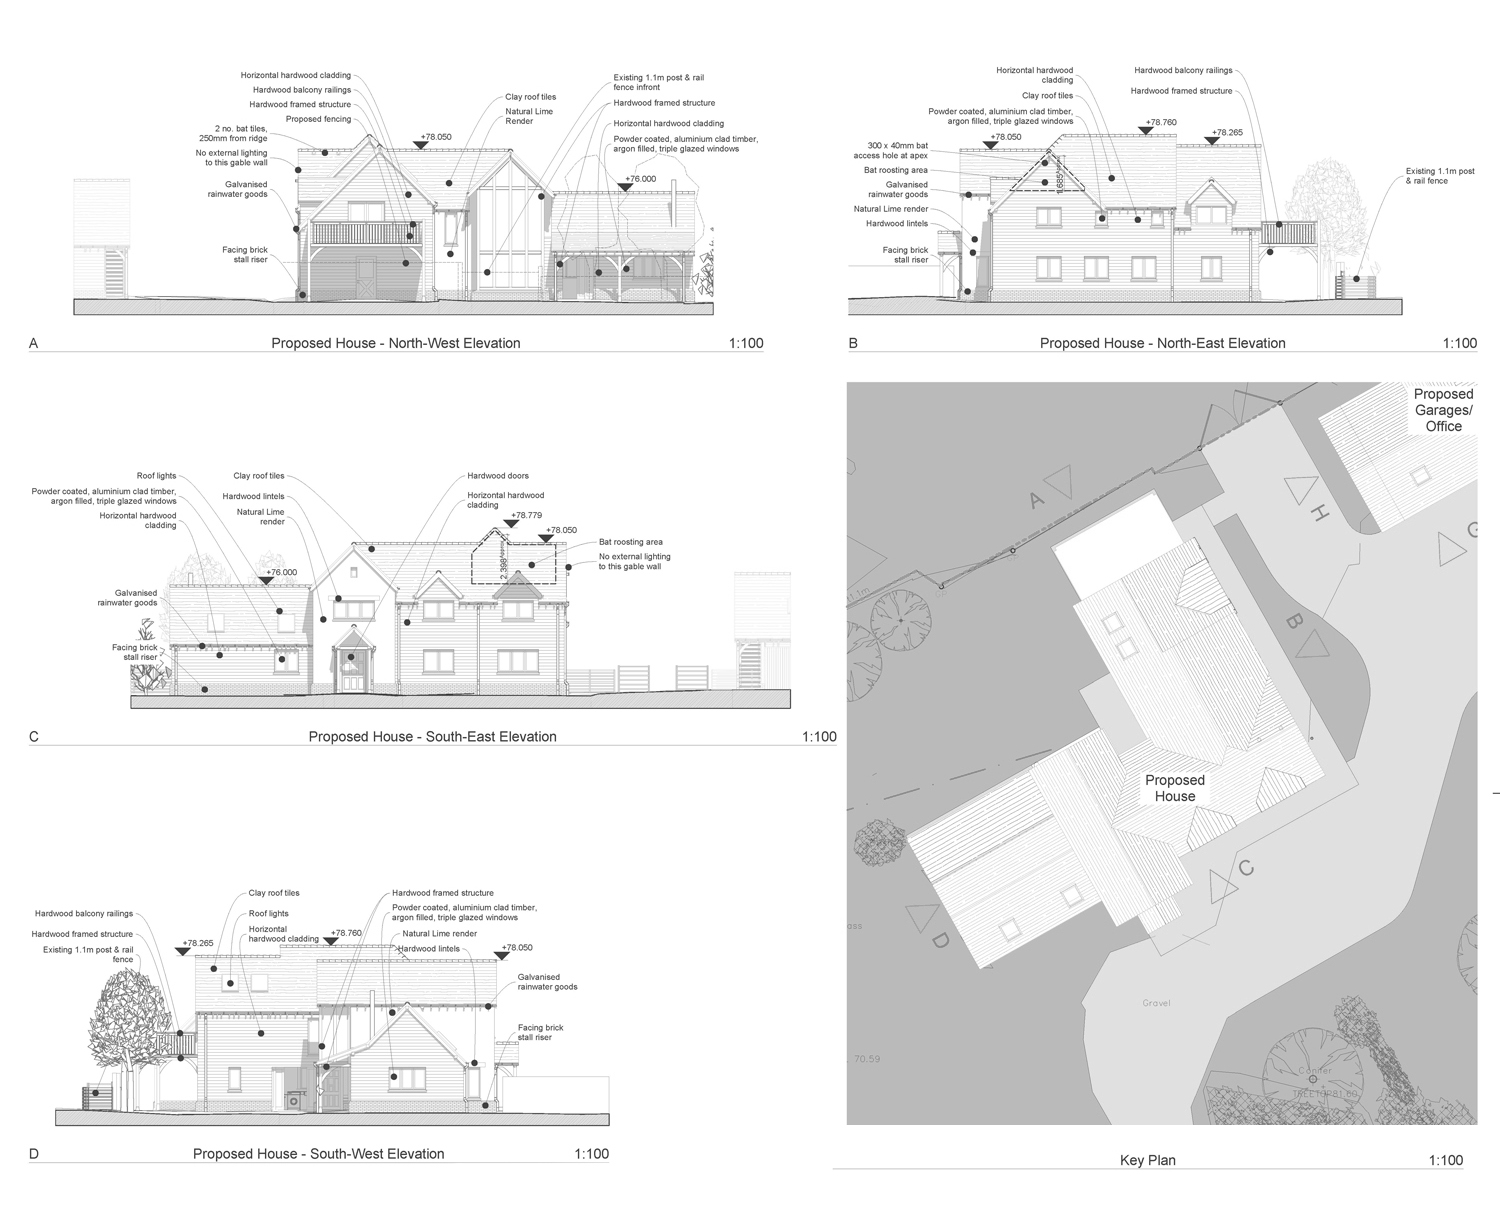 T3449_060_G Elevations - House - ProposedED.jpg